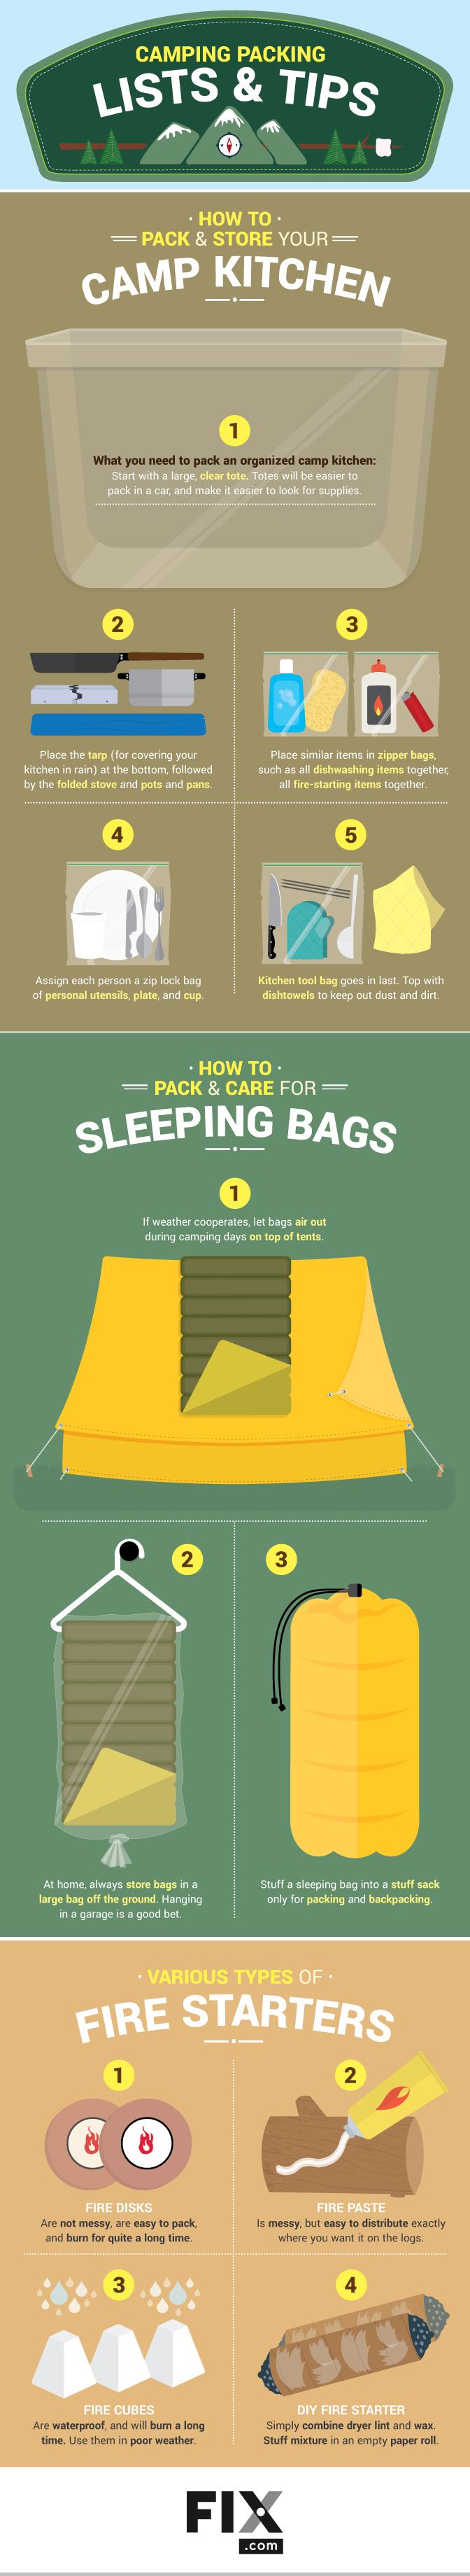 Camping Packing Lists and Tips Everything You Need to Bring to the Campsite